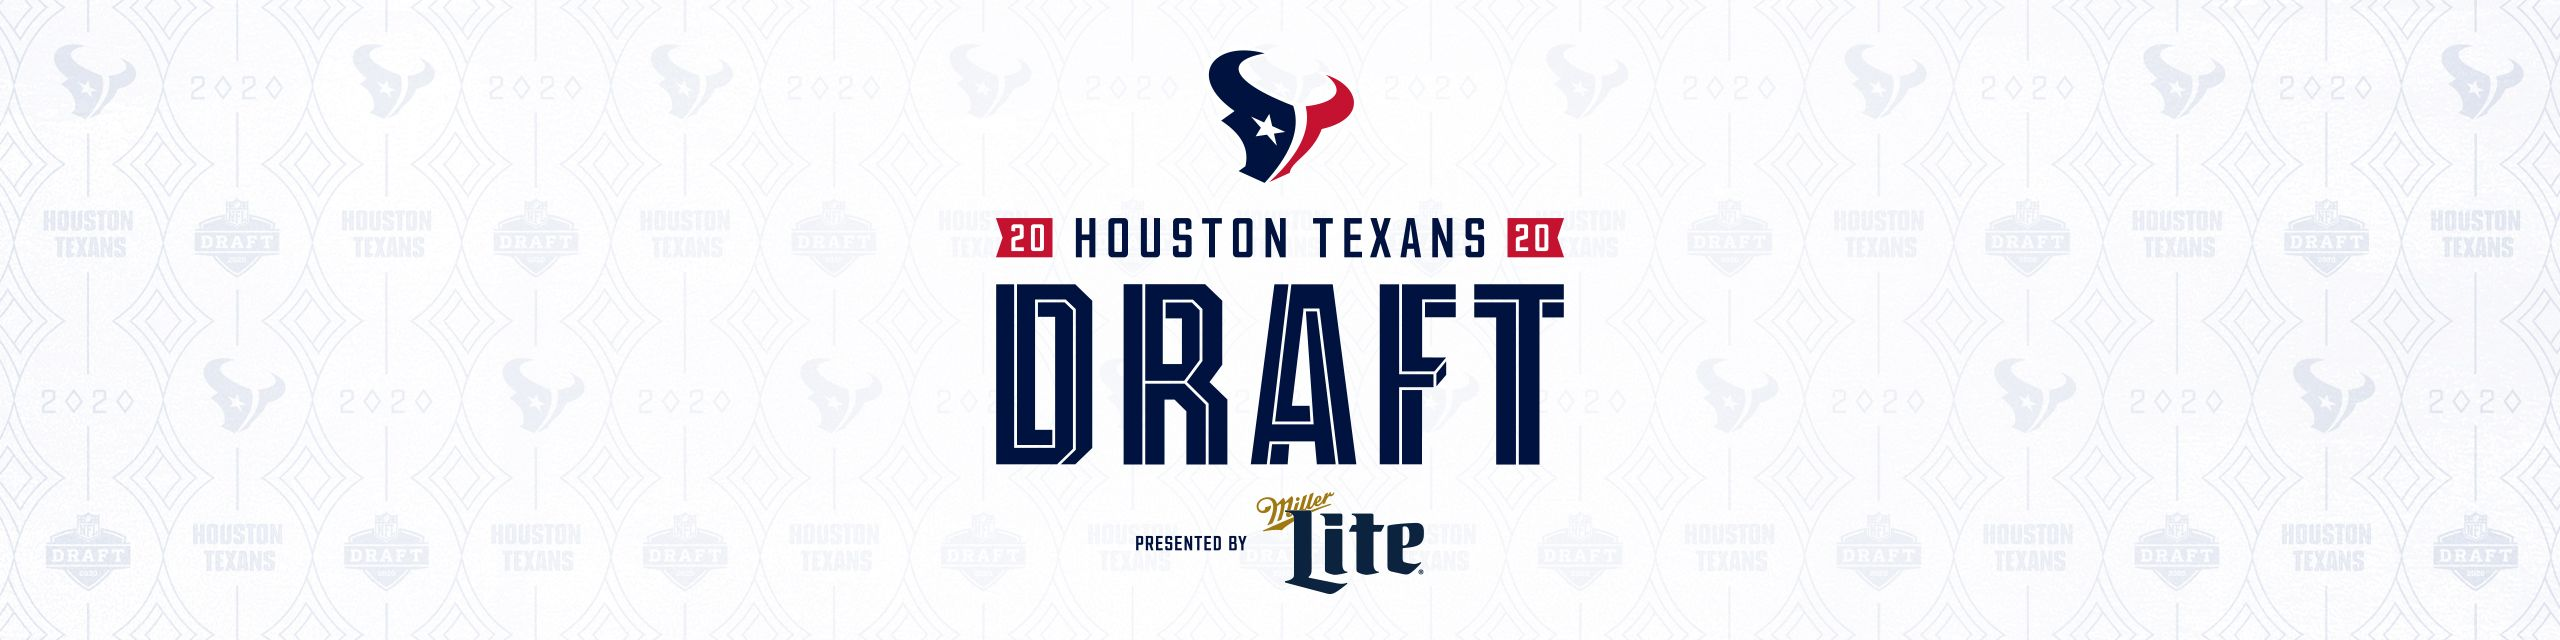 Houston Texans Daft. presented by Miller Lite